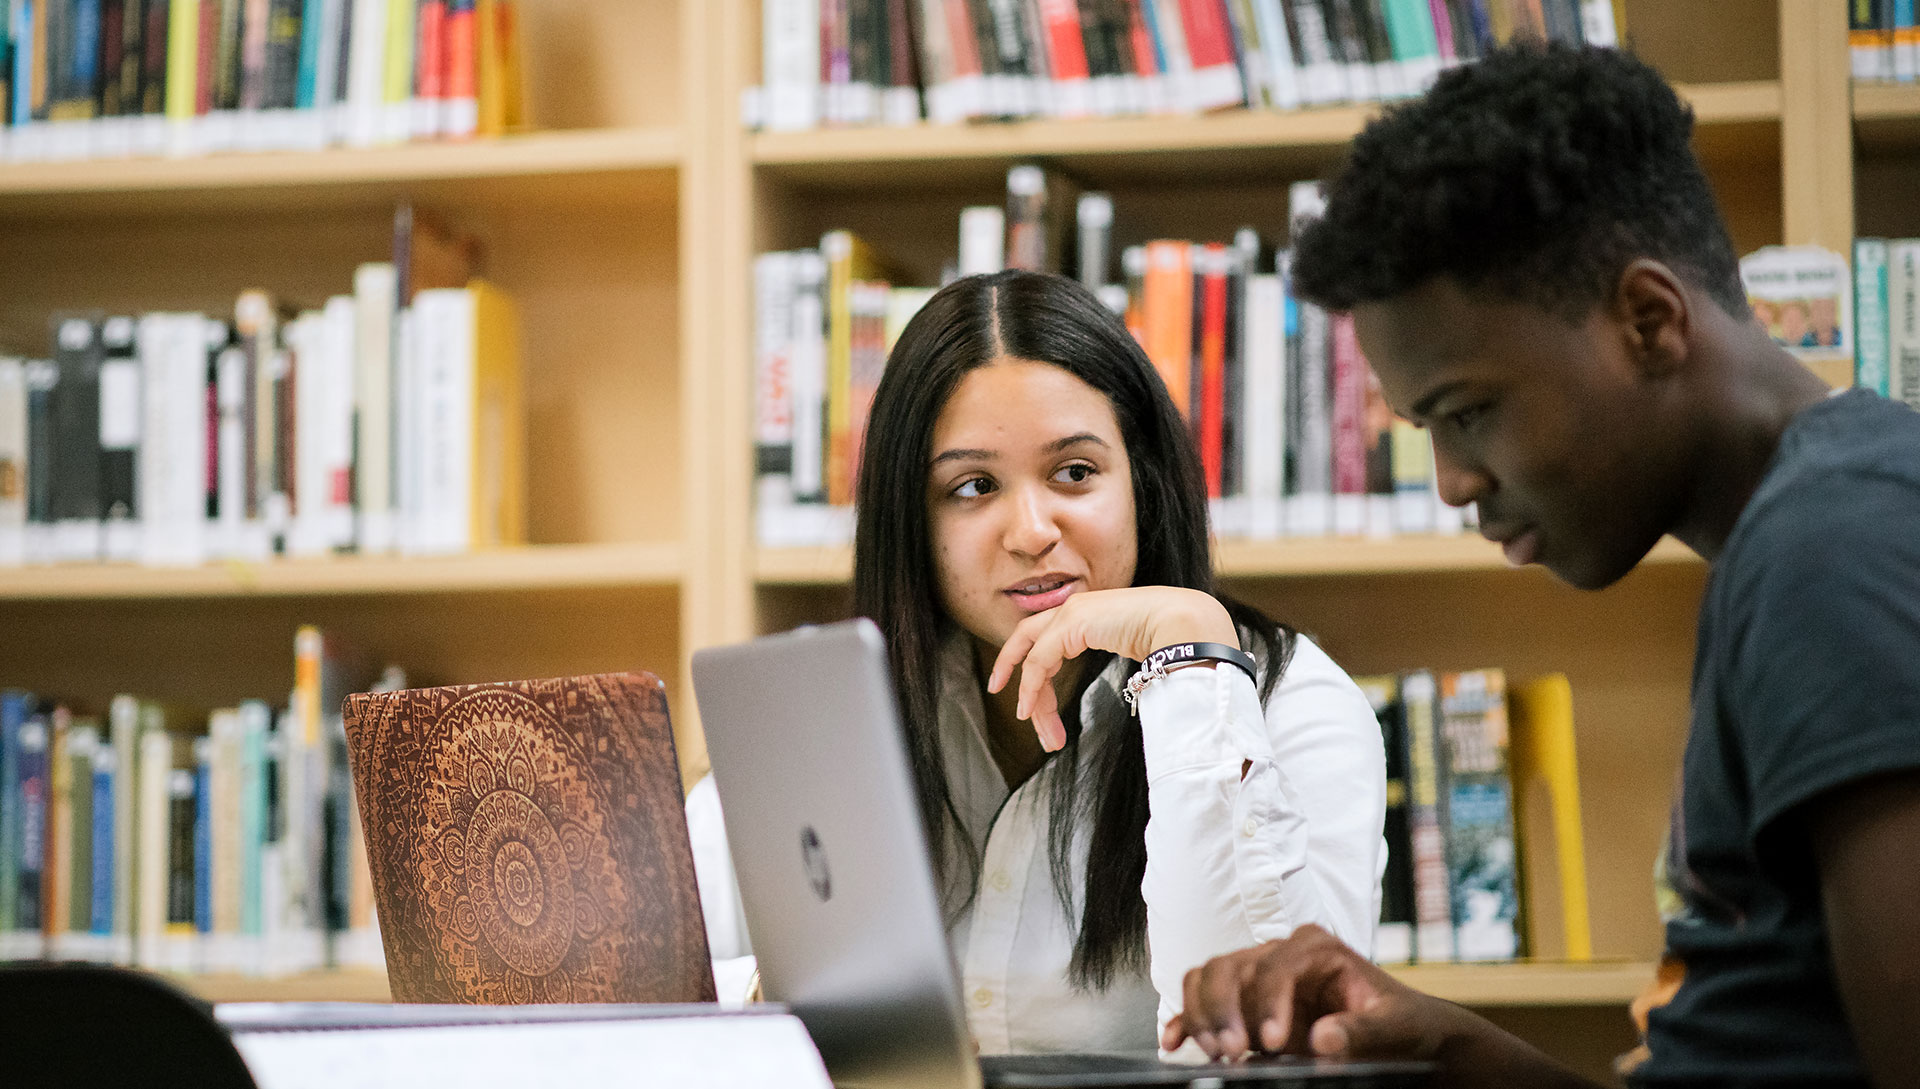 Two students working on laptops together in a library